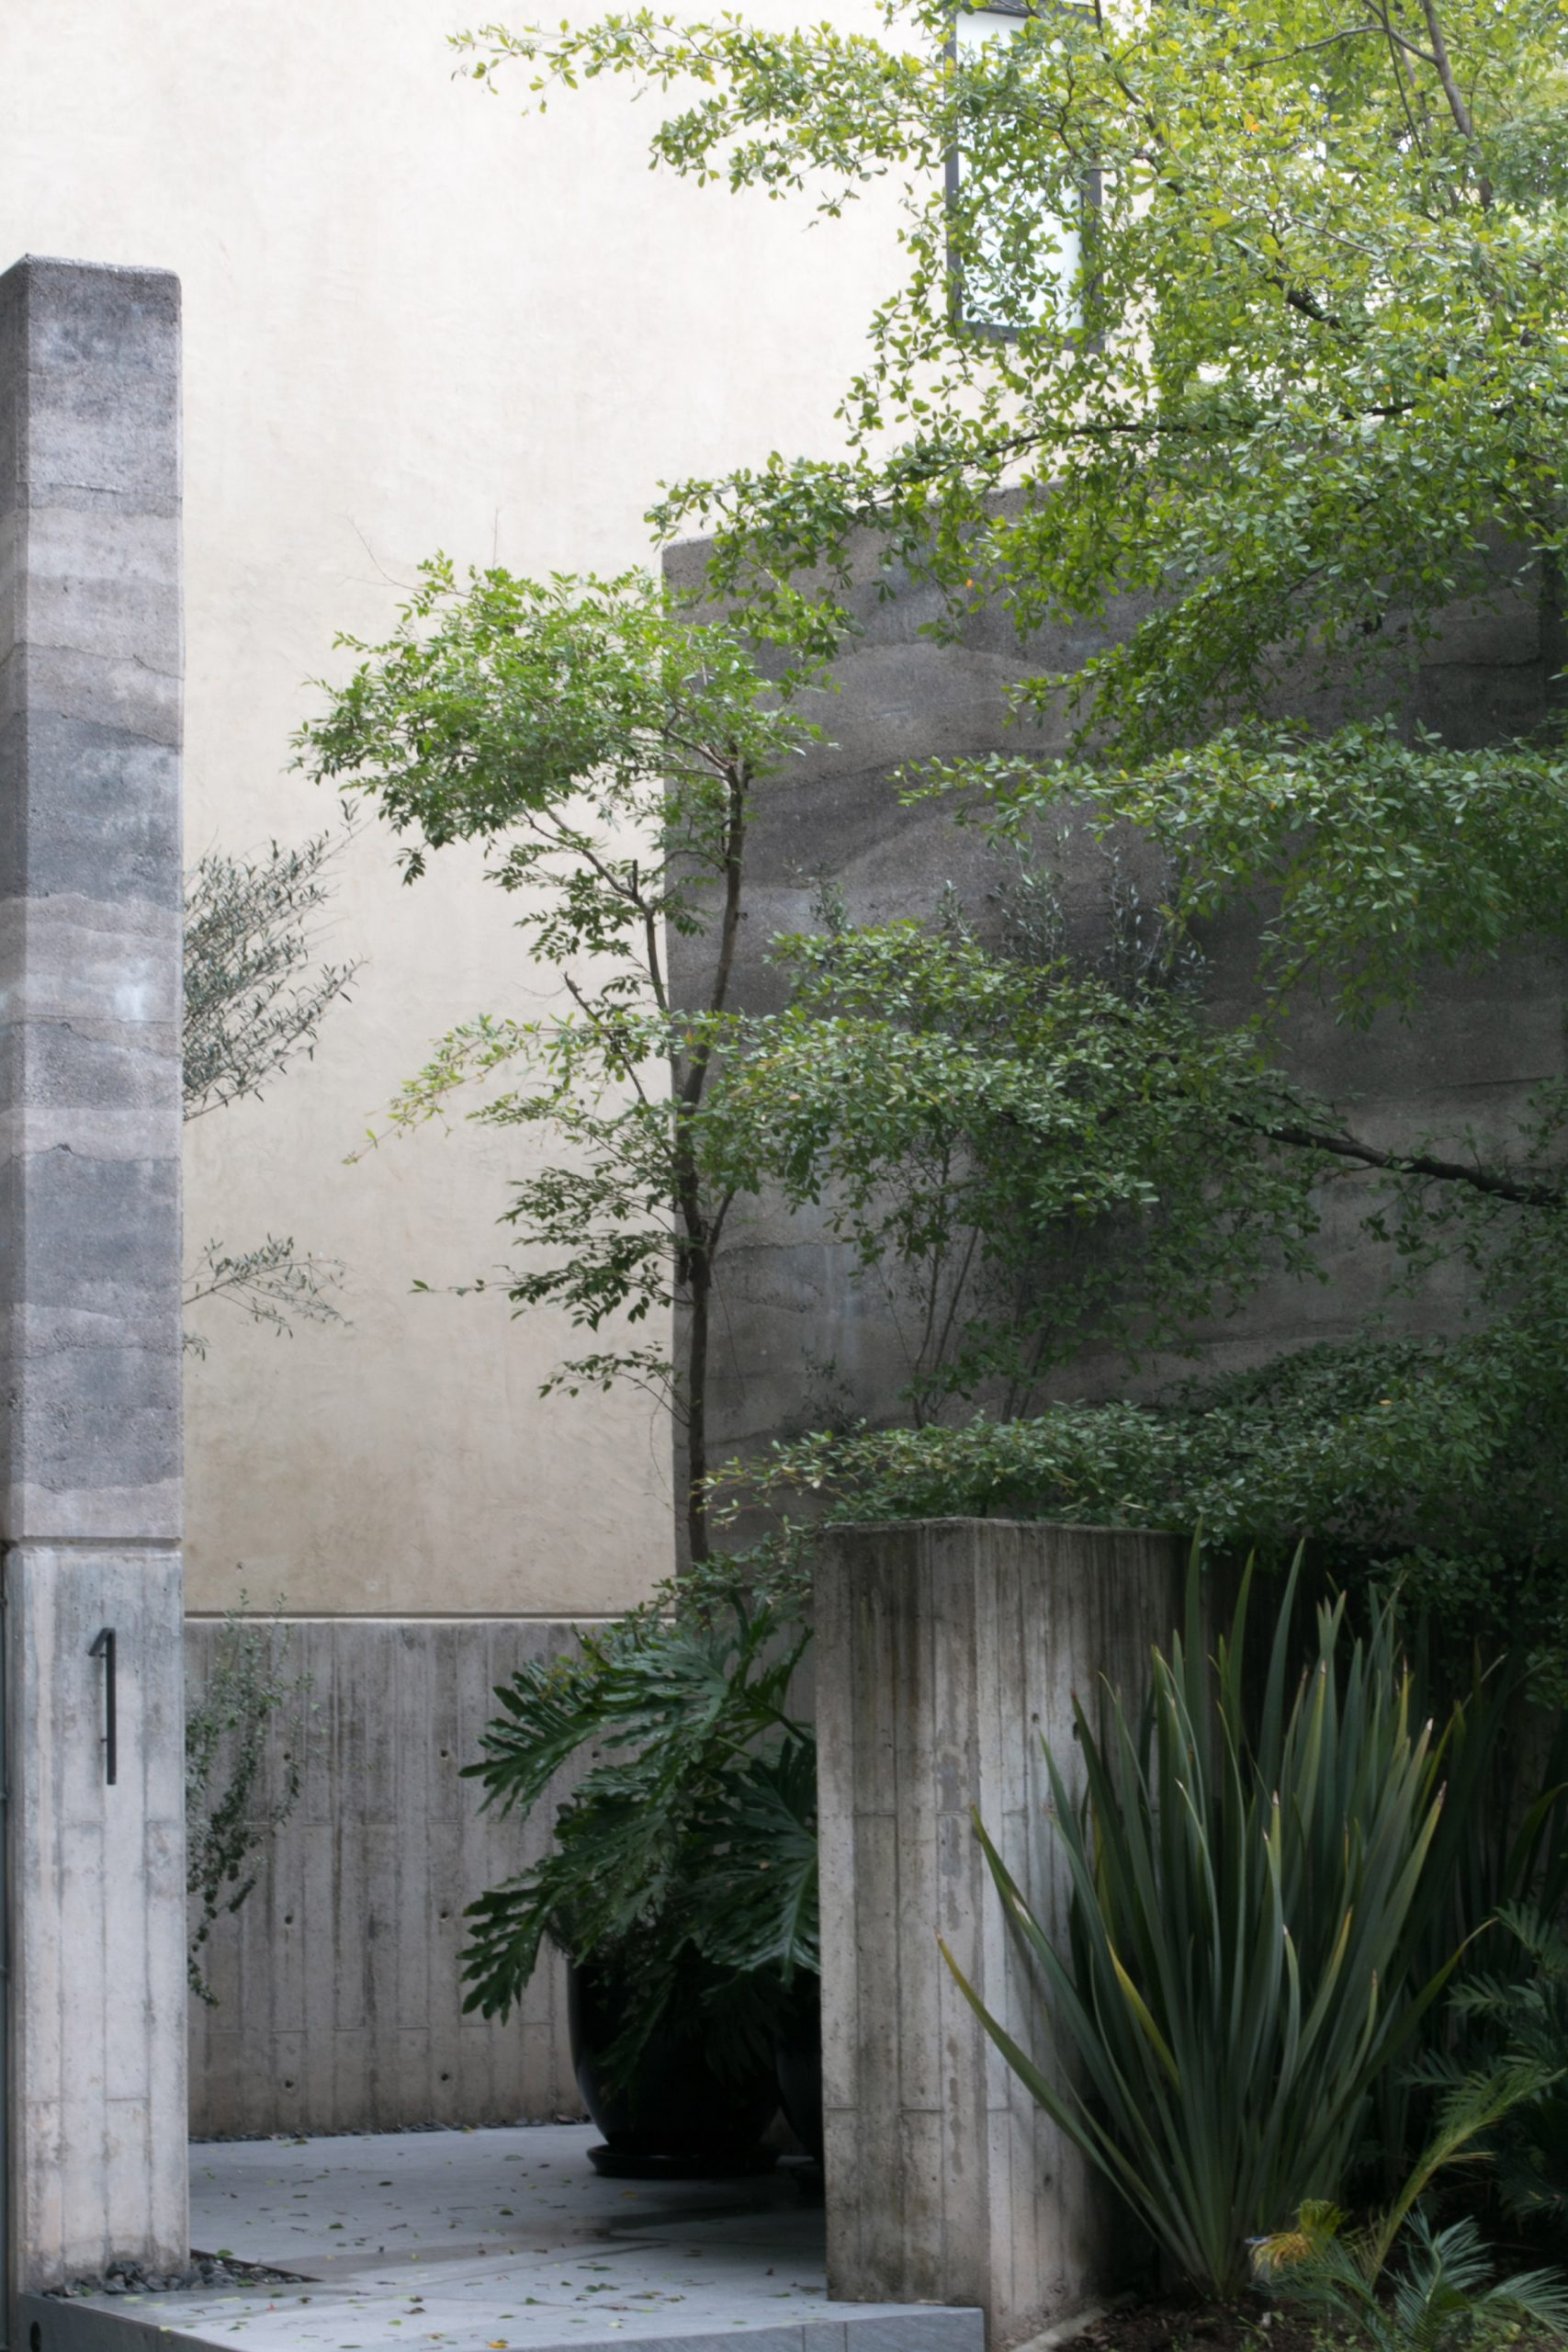 Concrete and stucco walls on Casa Duraznos